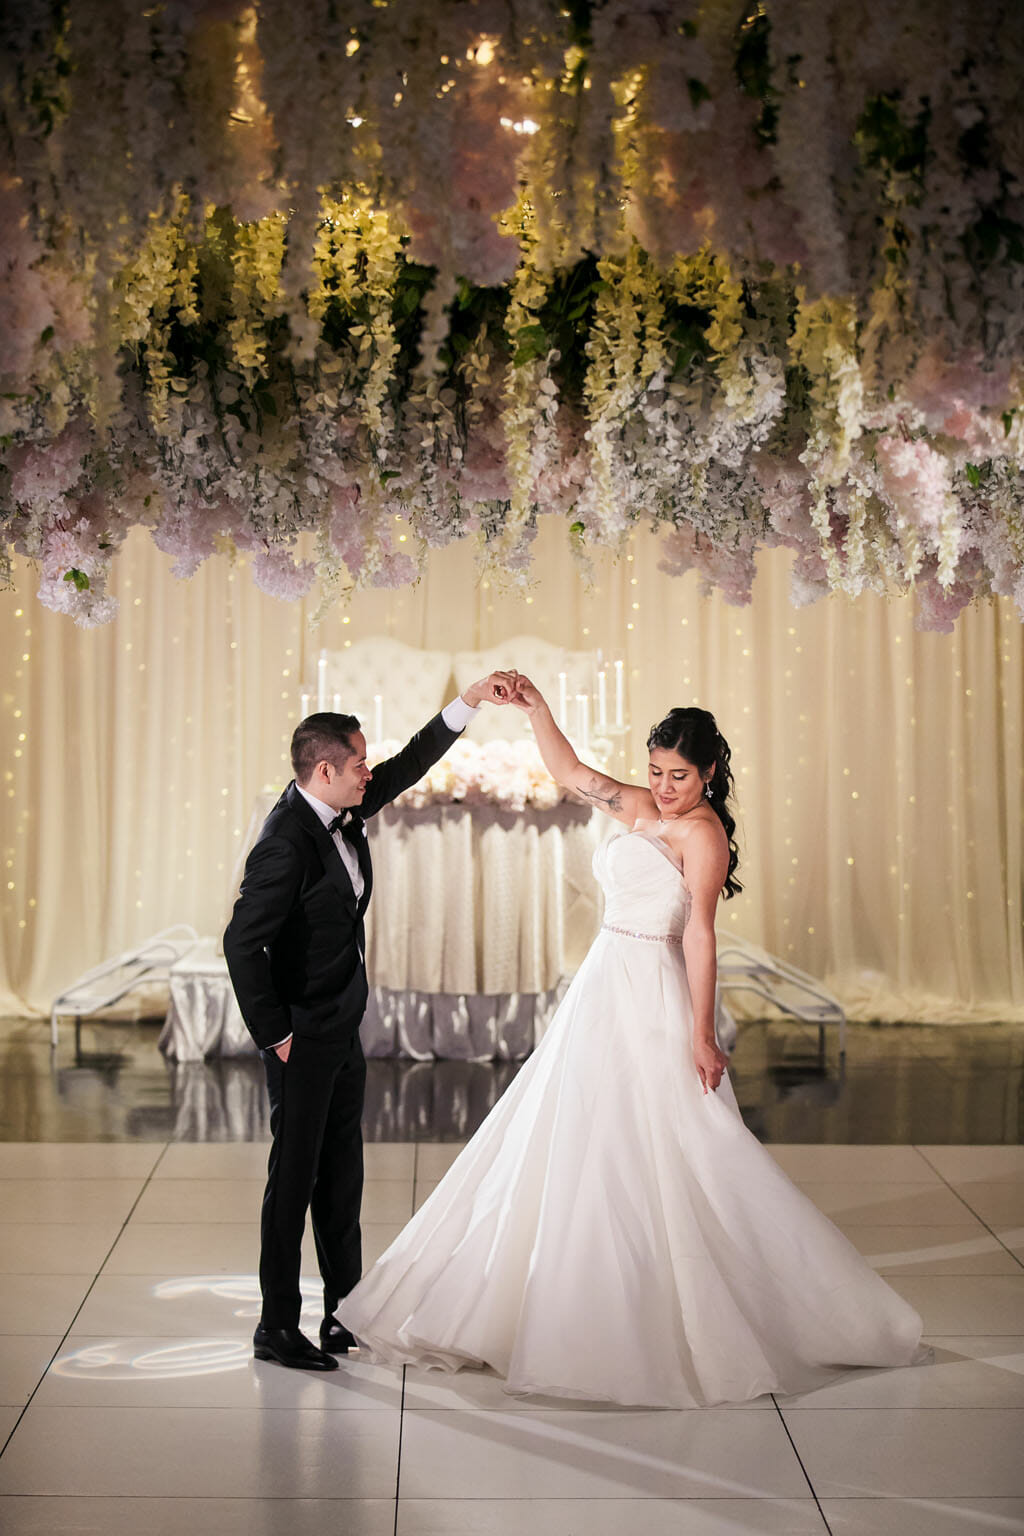 bride and groom dance under a wedding flower hanging ceiling